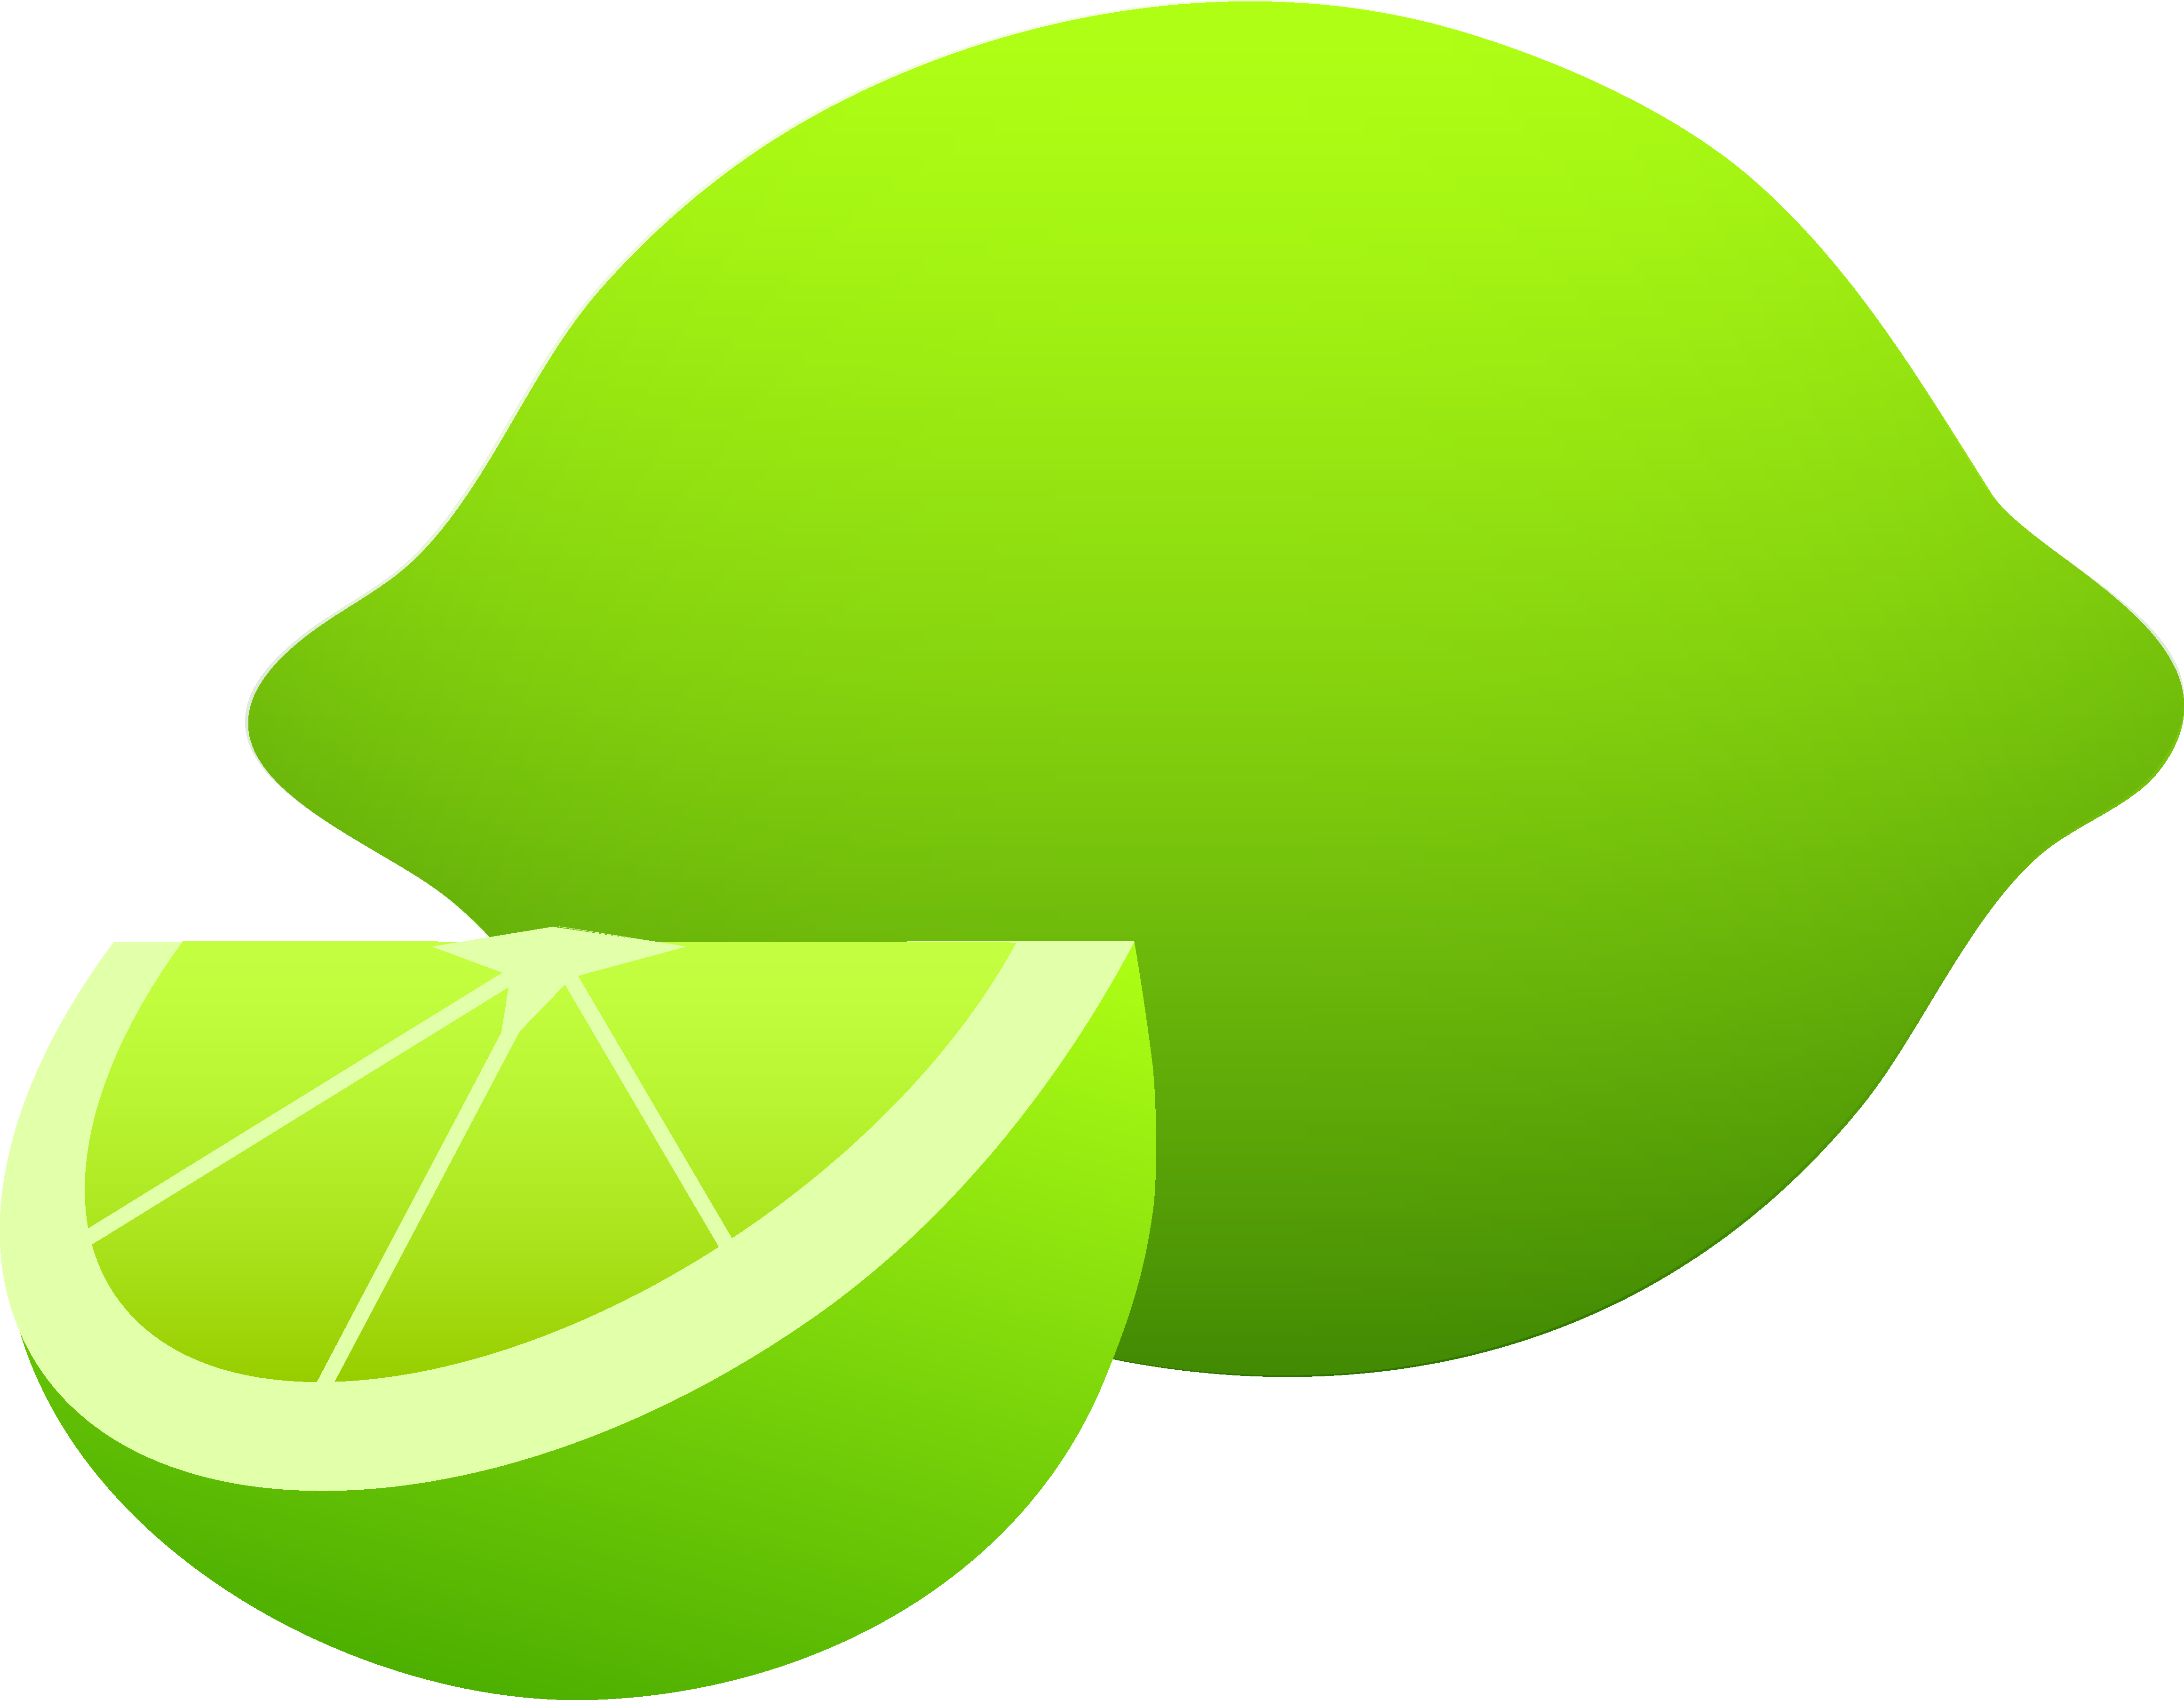 Whole Lime and Slice.